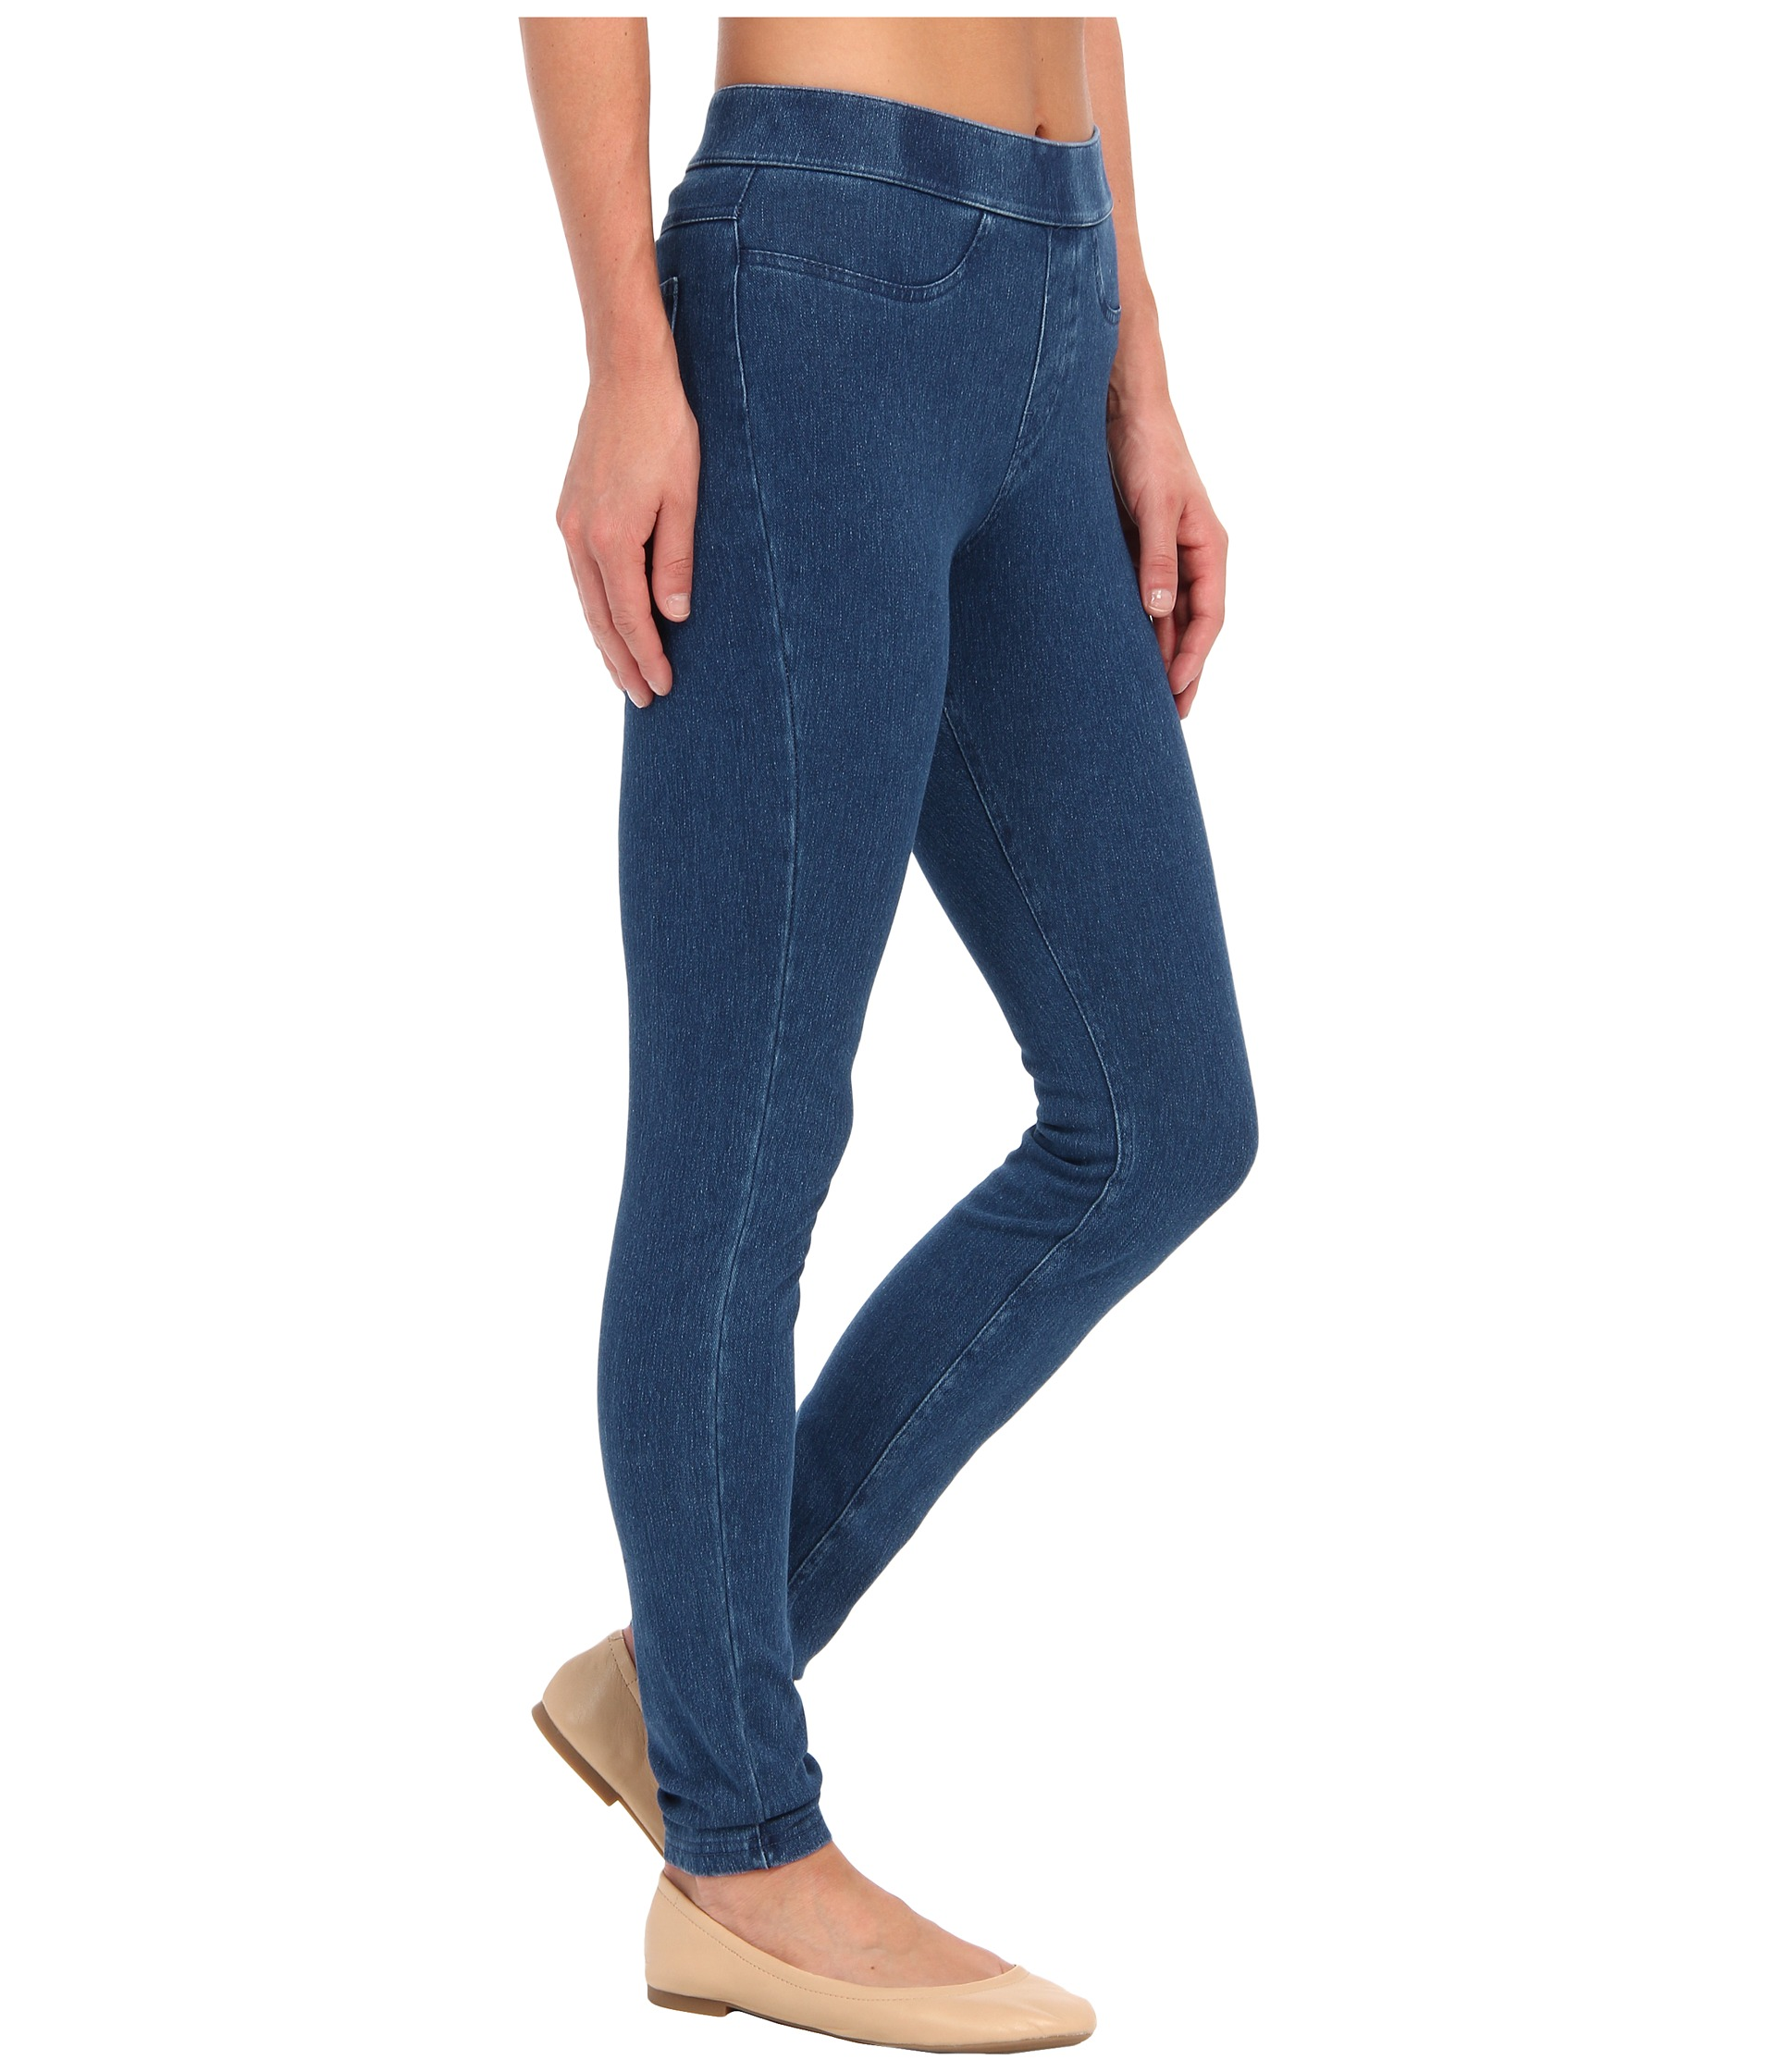 """The Riders by Lee Women's Curvy Fit Skinny Jean combines premium fabric and a fantastic fit to create the """"must-have"""" jean this season. The curvy fit sits slightly below the waist, perfectly fitting and flattering your curves/5(49)."""